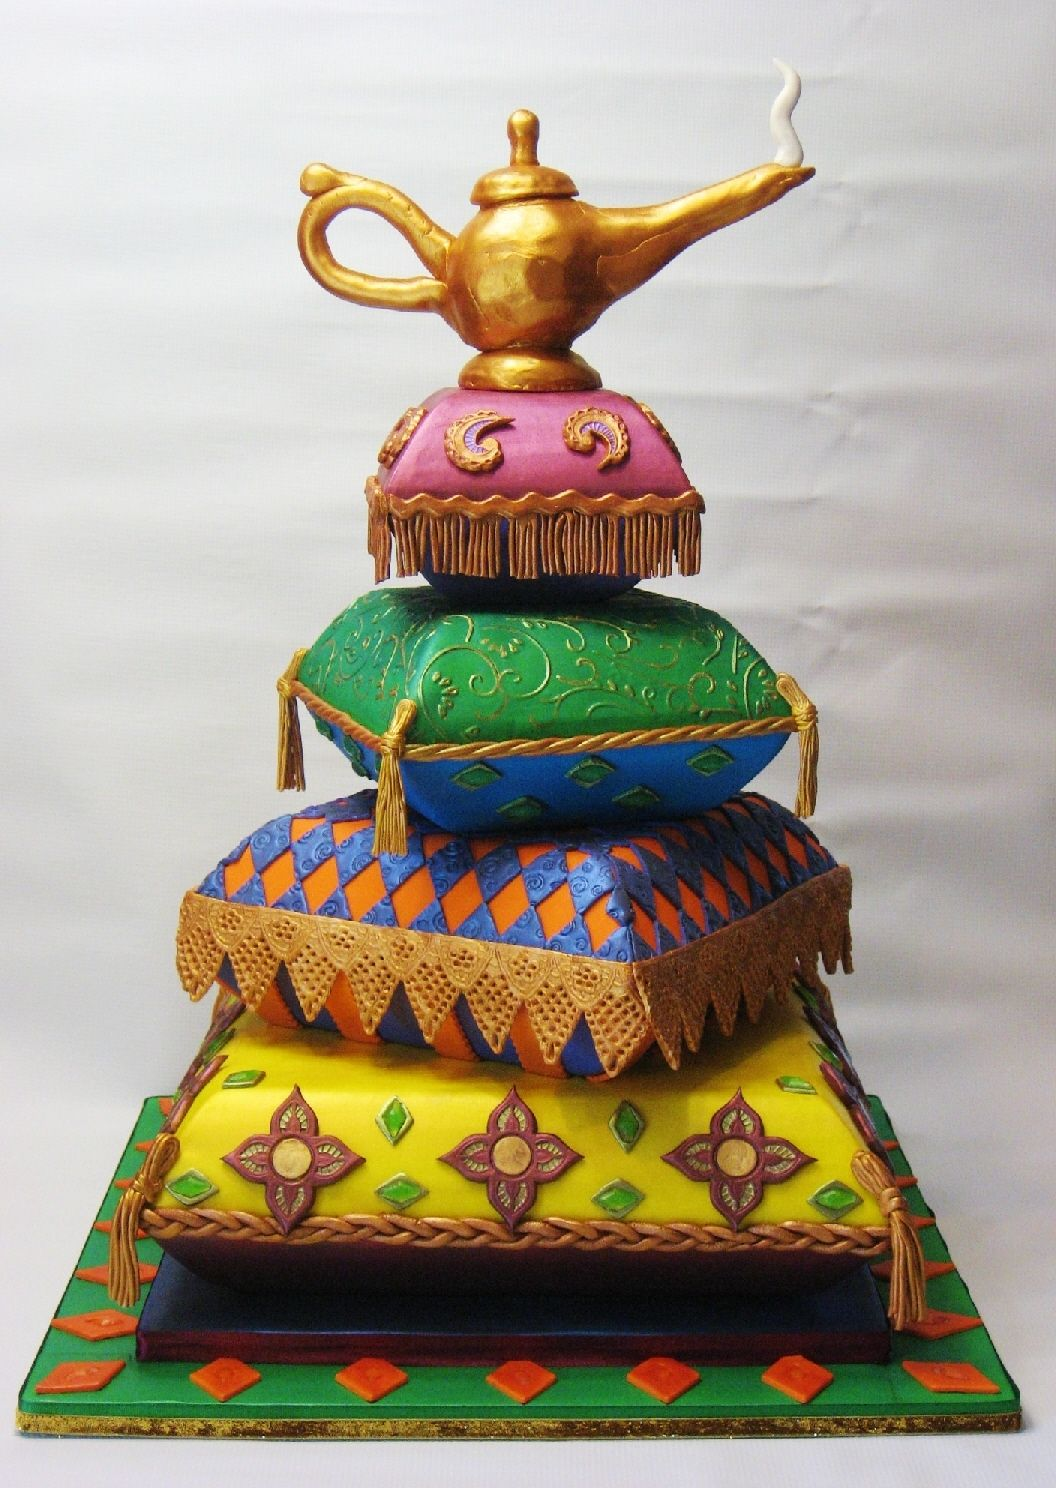 Arabian pillow cake pillow cakes bedazzled with genie for Arabian cake decoration